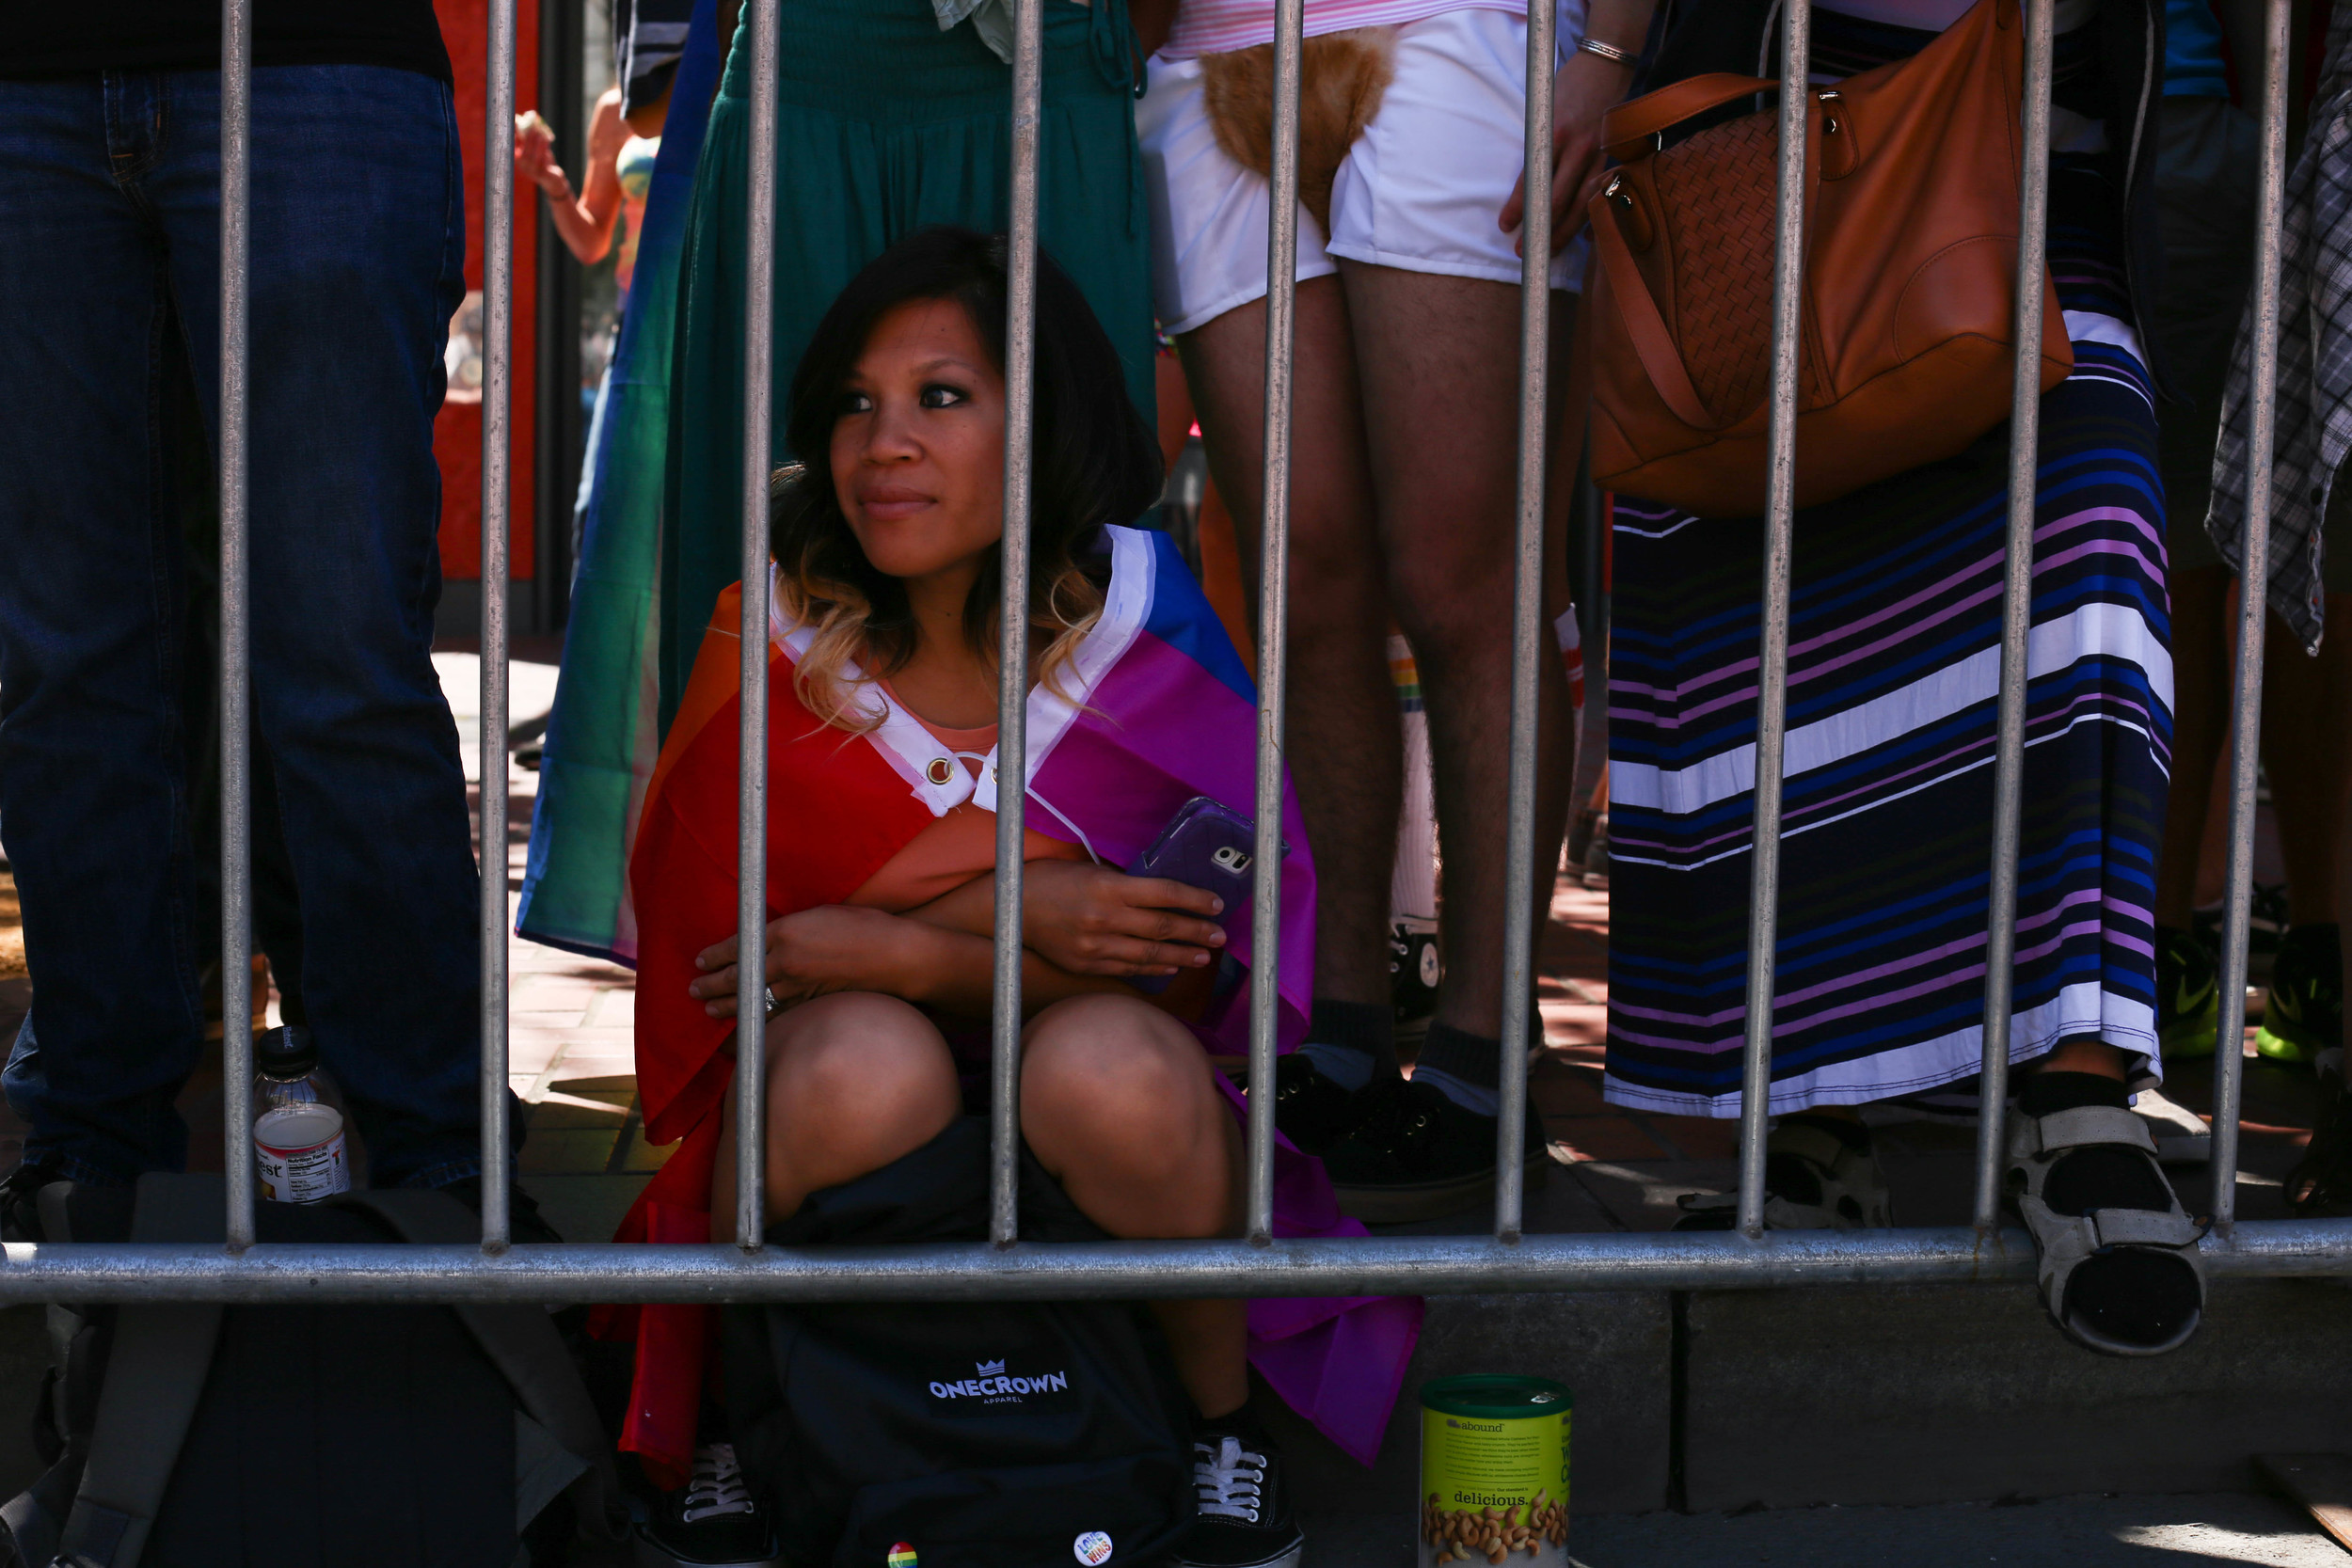 Emerald Rubio (San Jose, Cali.) watches the parade with her mother for the first time as thousands gathered to celebrate Pride in San Francisco, Cali. Sunday, June 26, 2016.